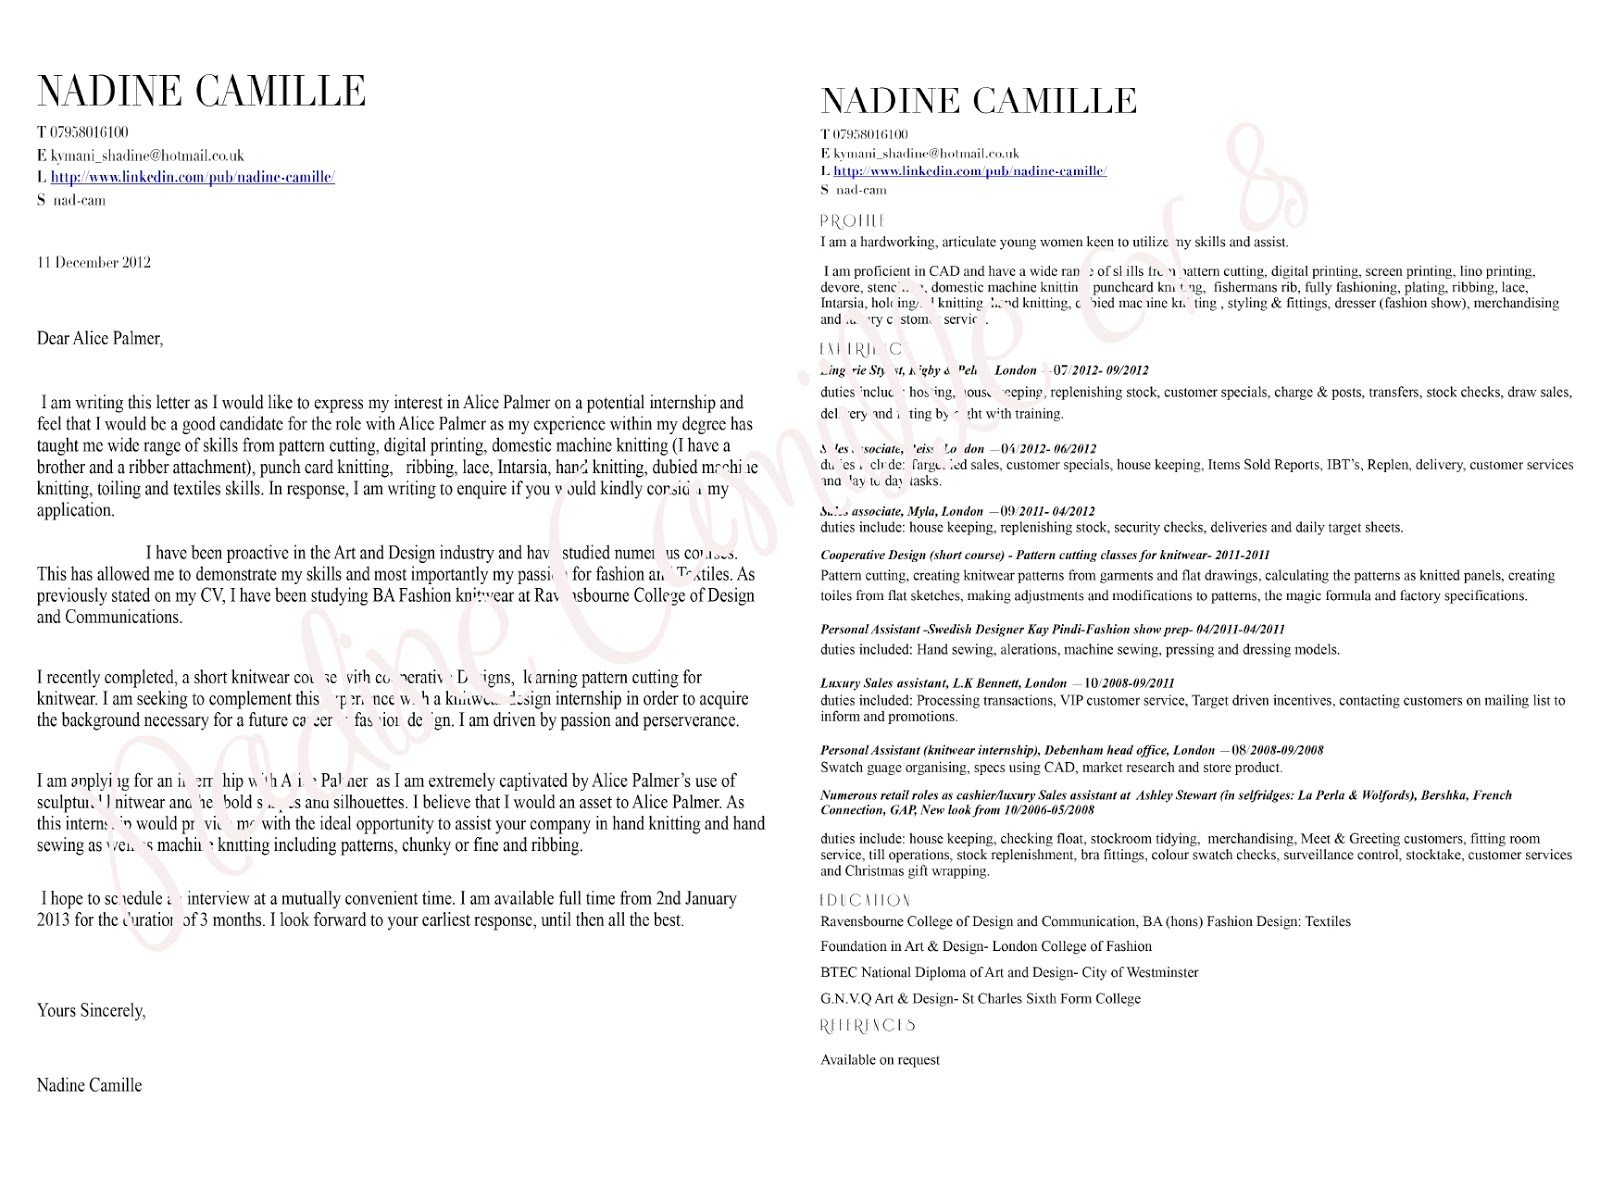 Industrial placement cover letter examples